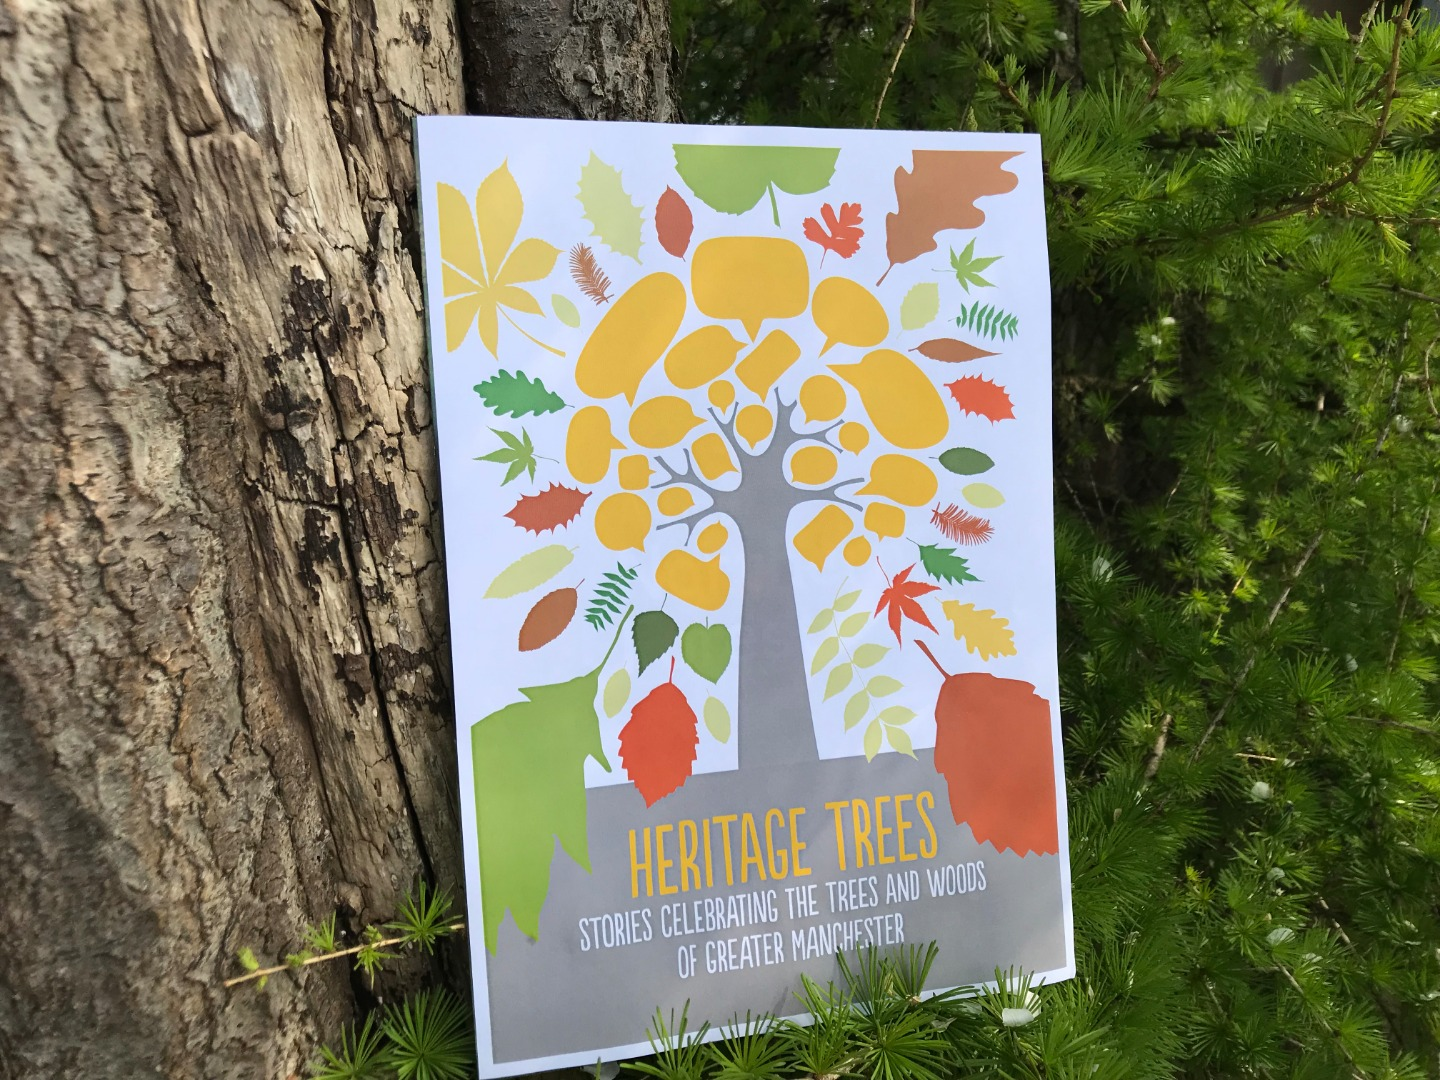 New legacy book launched by City of Trees